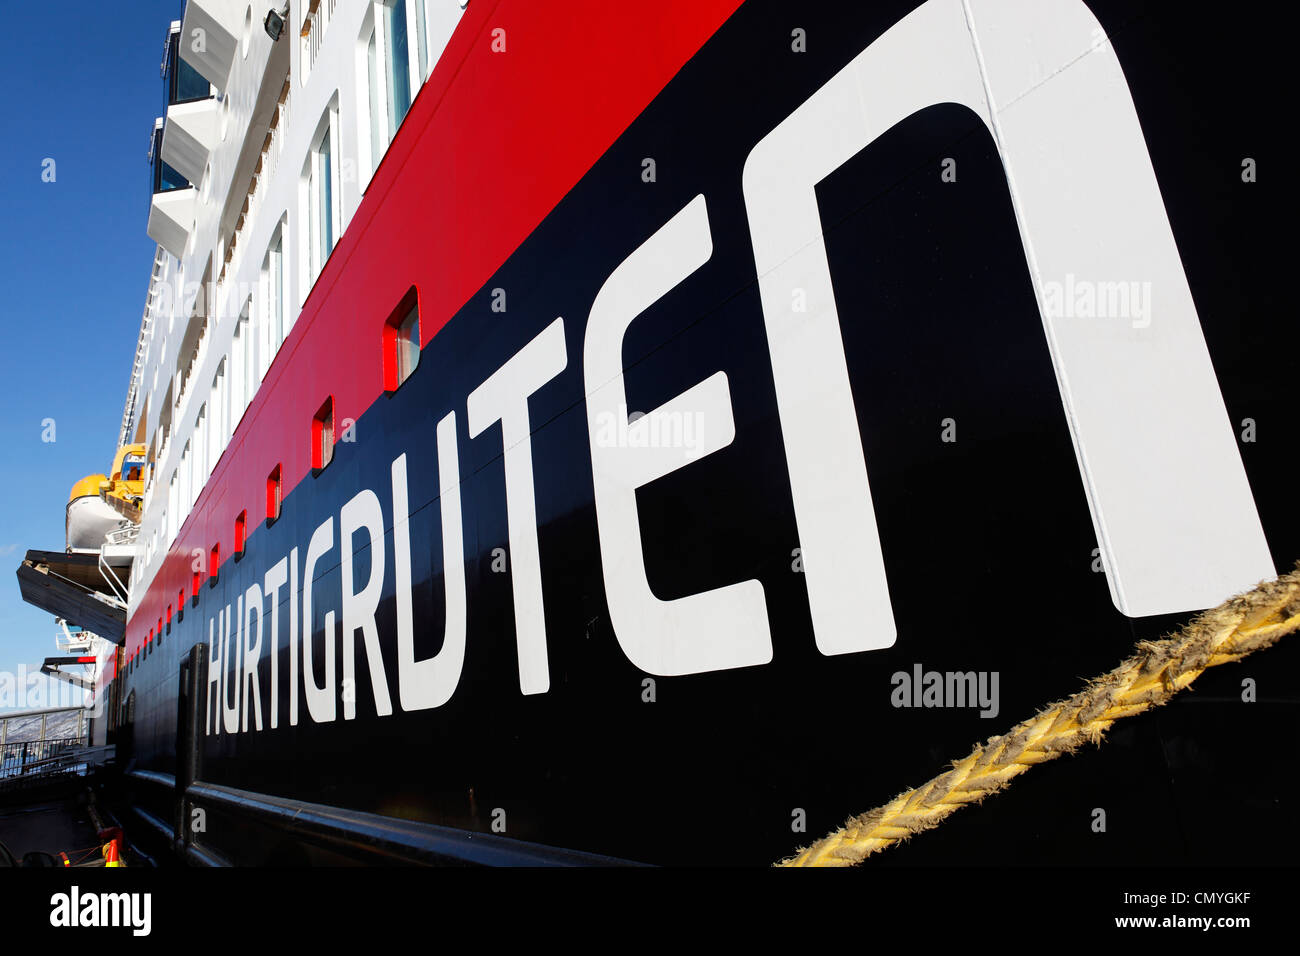 Norway, County of Troms, Tromso, stopover of Trollfjord boat, shipping company Hurtigruten which assures since 1893 - Stock Image